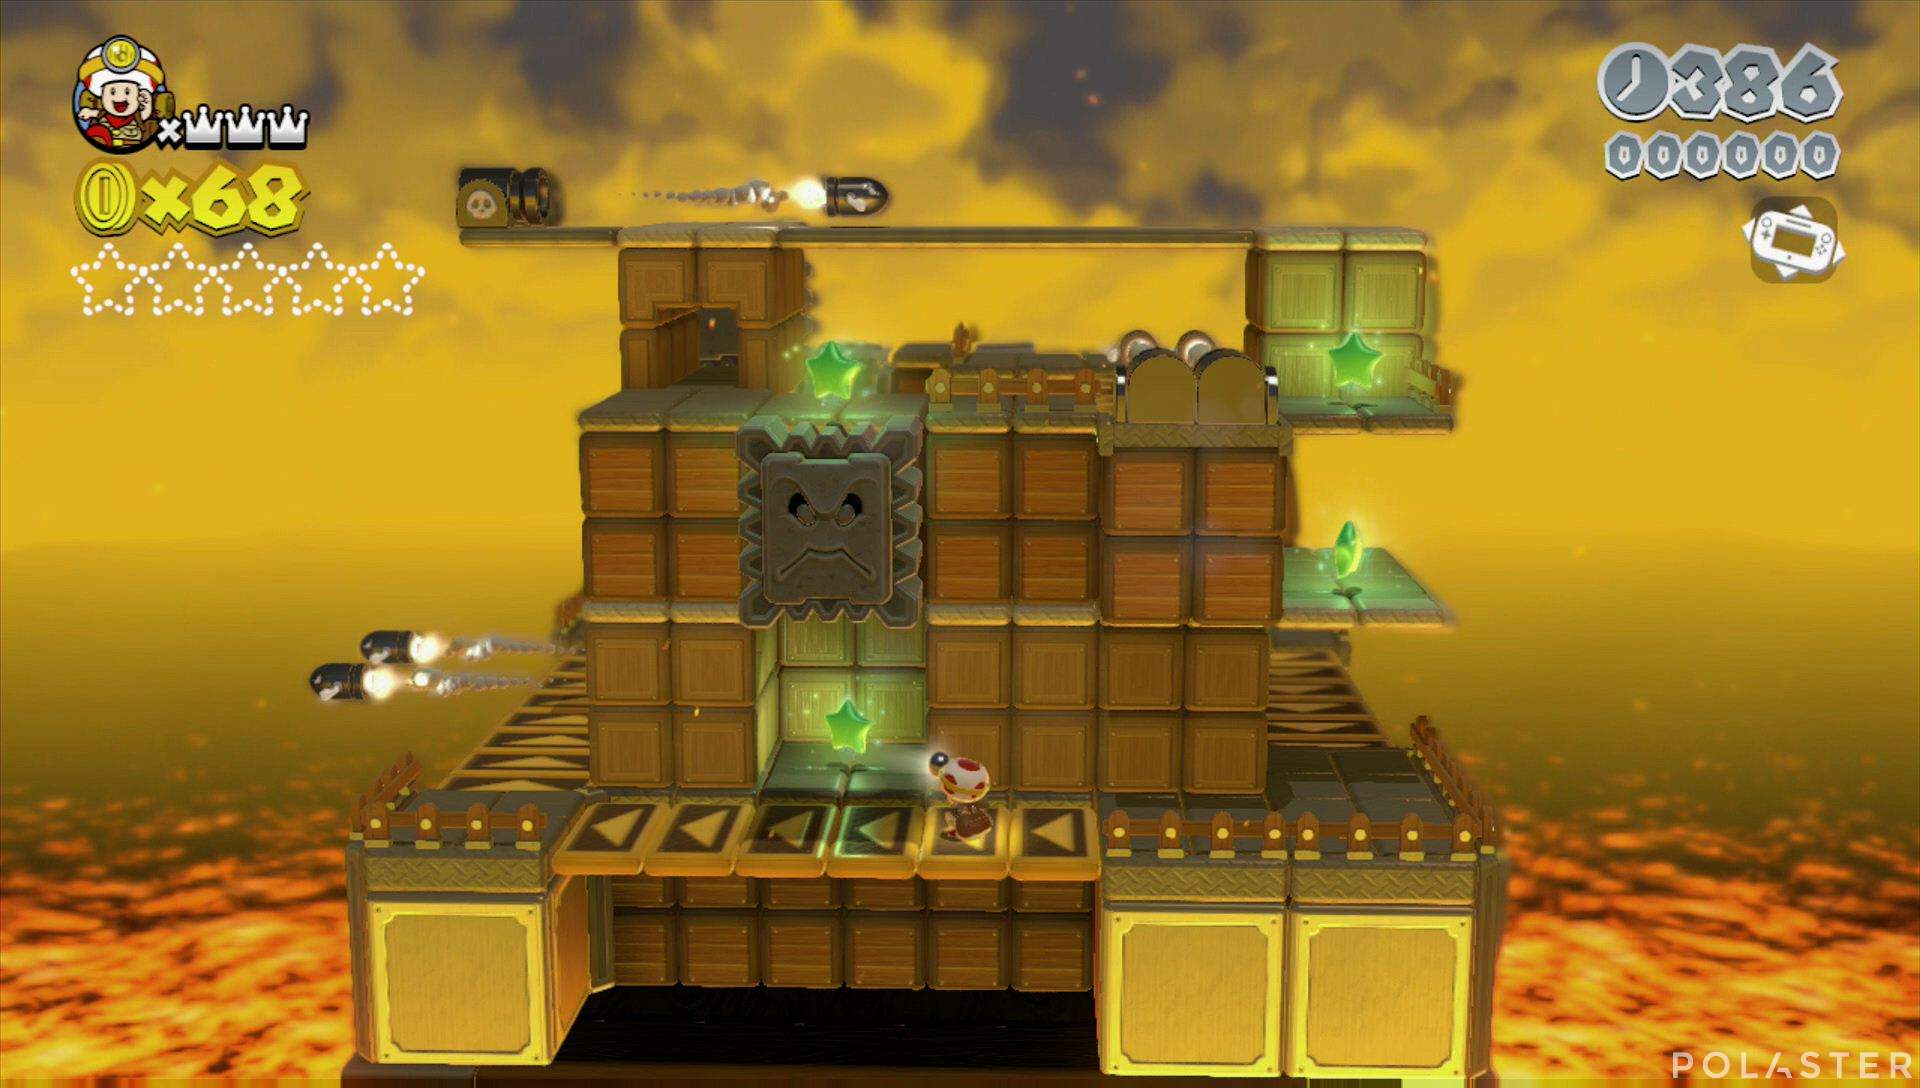 Super Mario 3D World Mundo Castillo-Toad Estrella 1